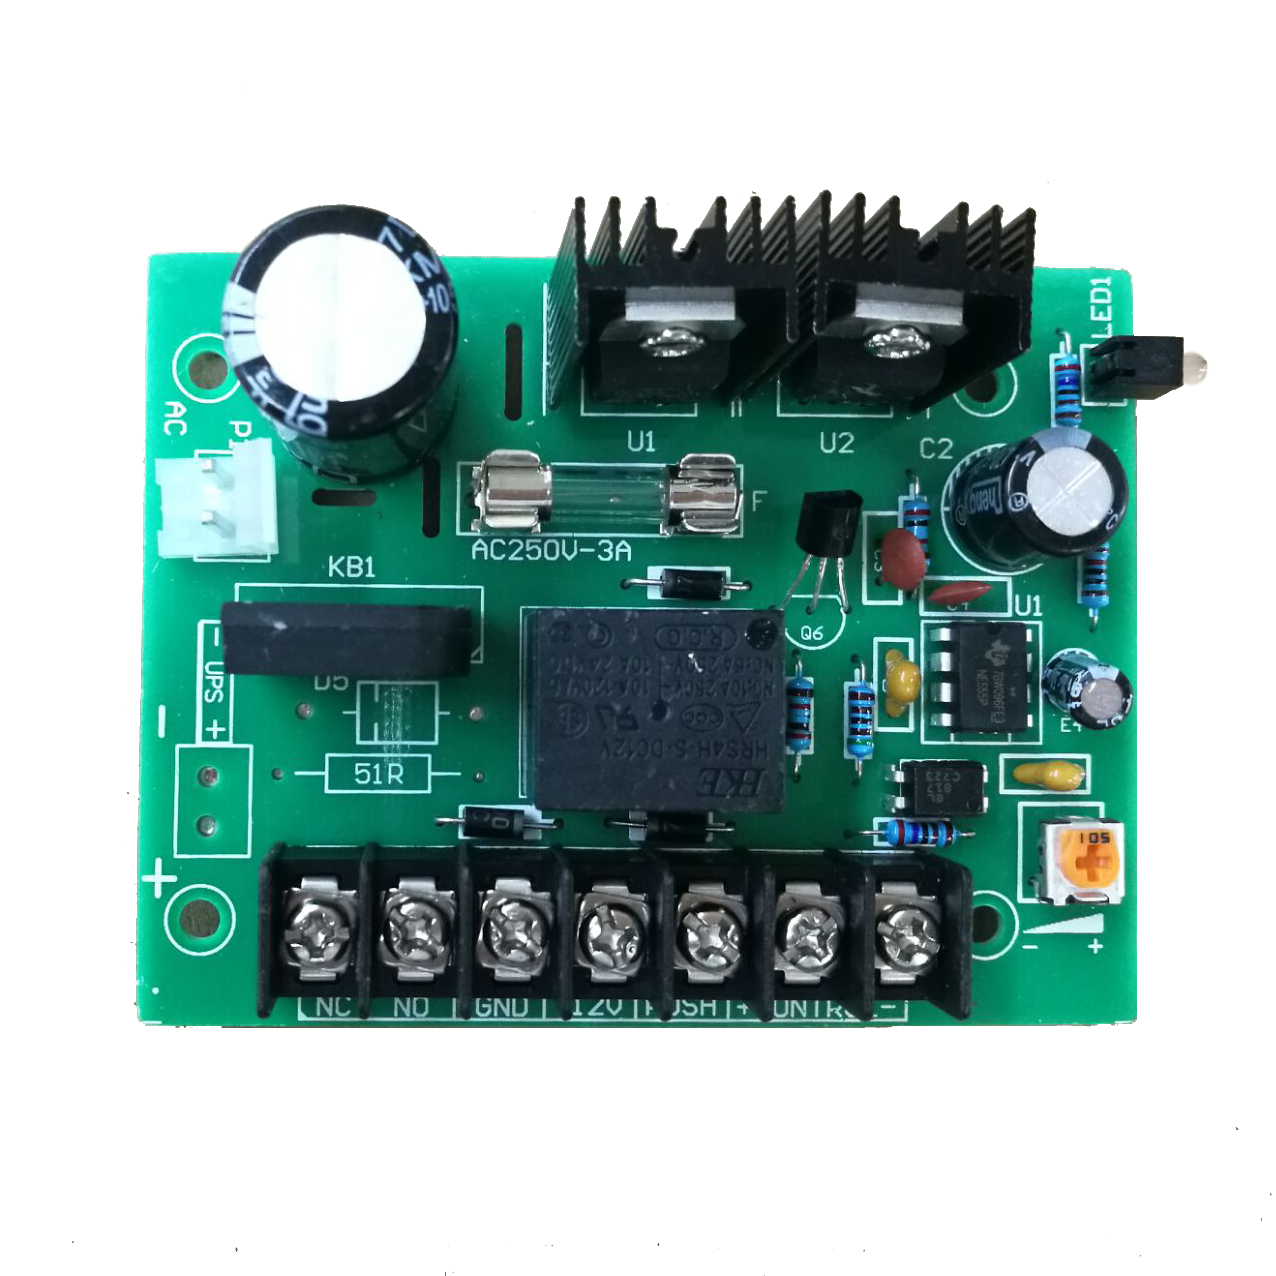 Professional DC12V3A 5A Power Supply Charging UPS Board Chassis Circuit For RFID Door Lock Access Control System